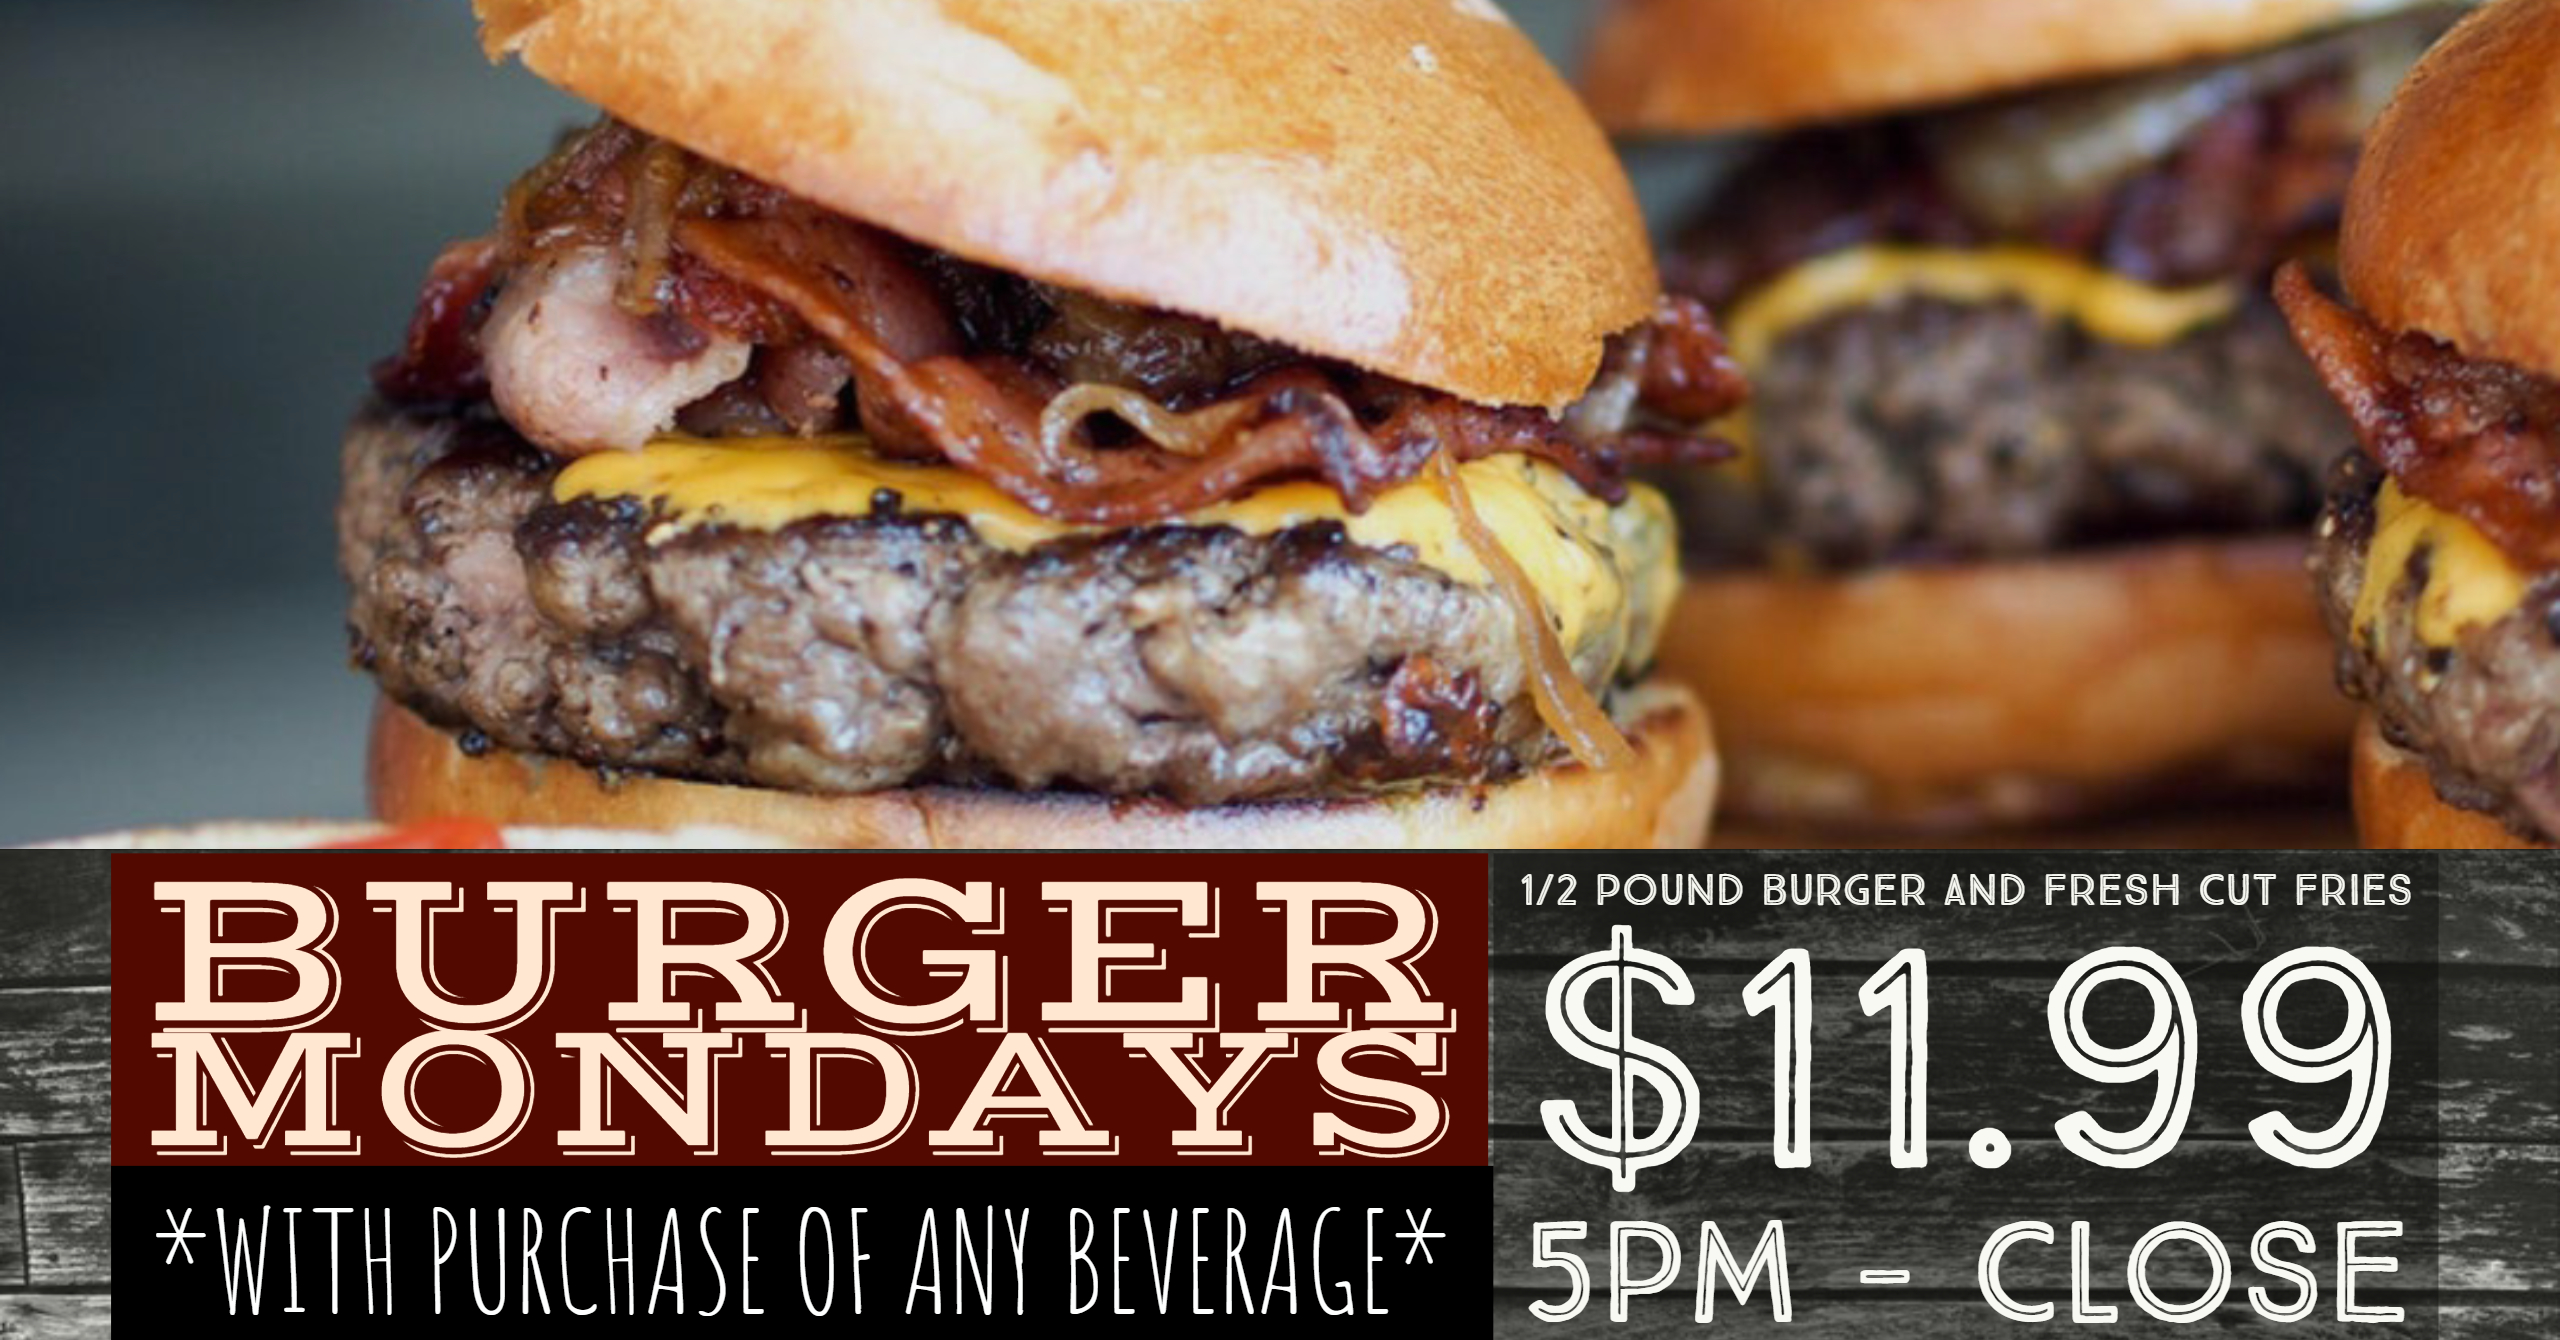 Burger Mondays $11.99 5pm-close